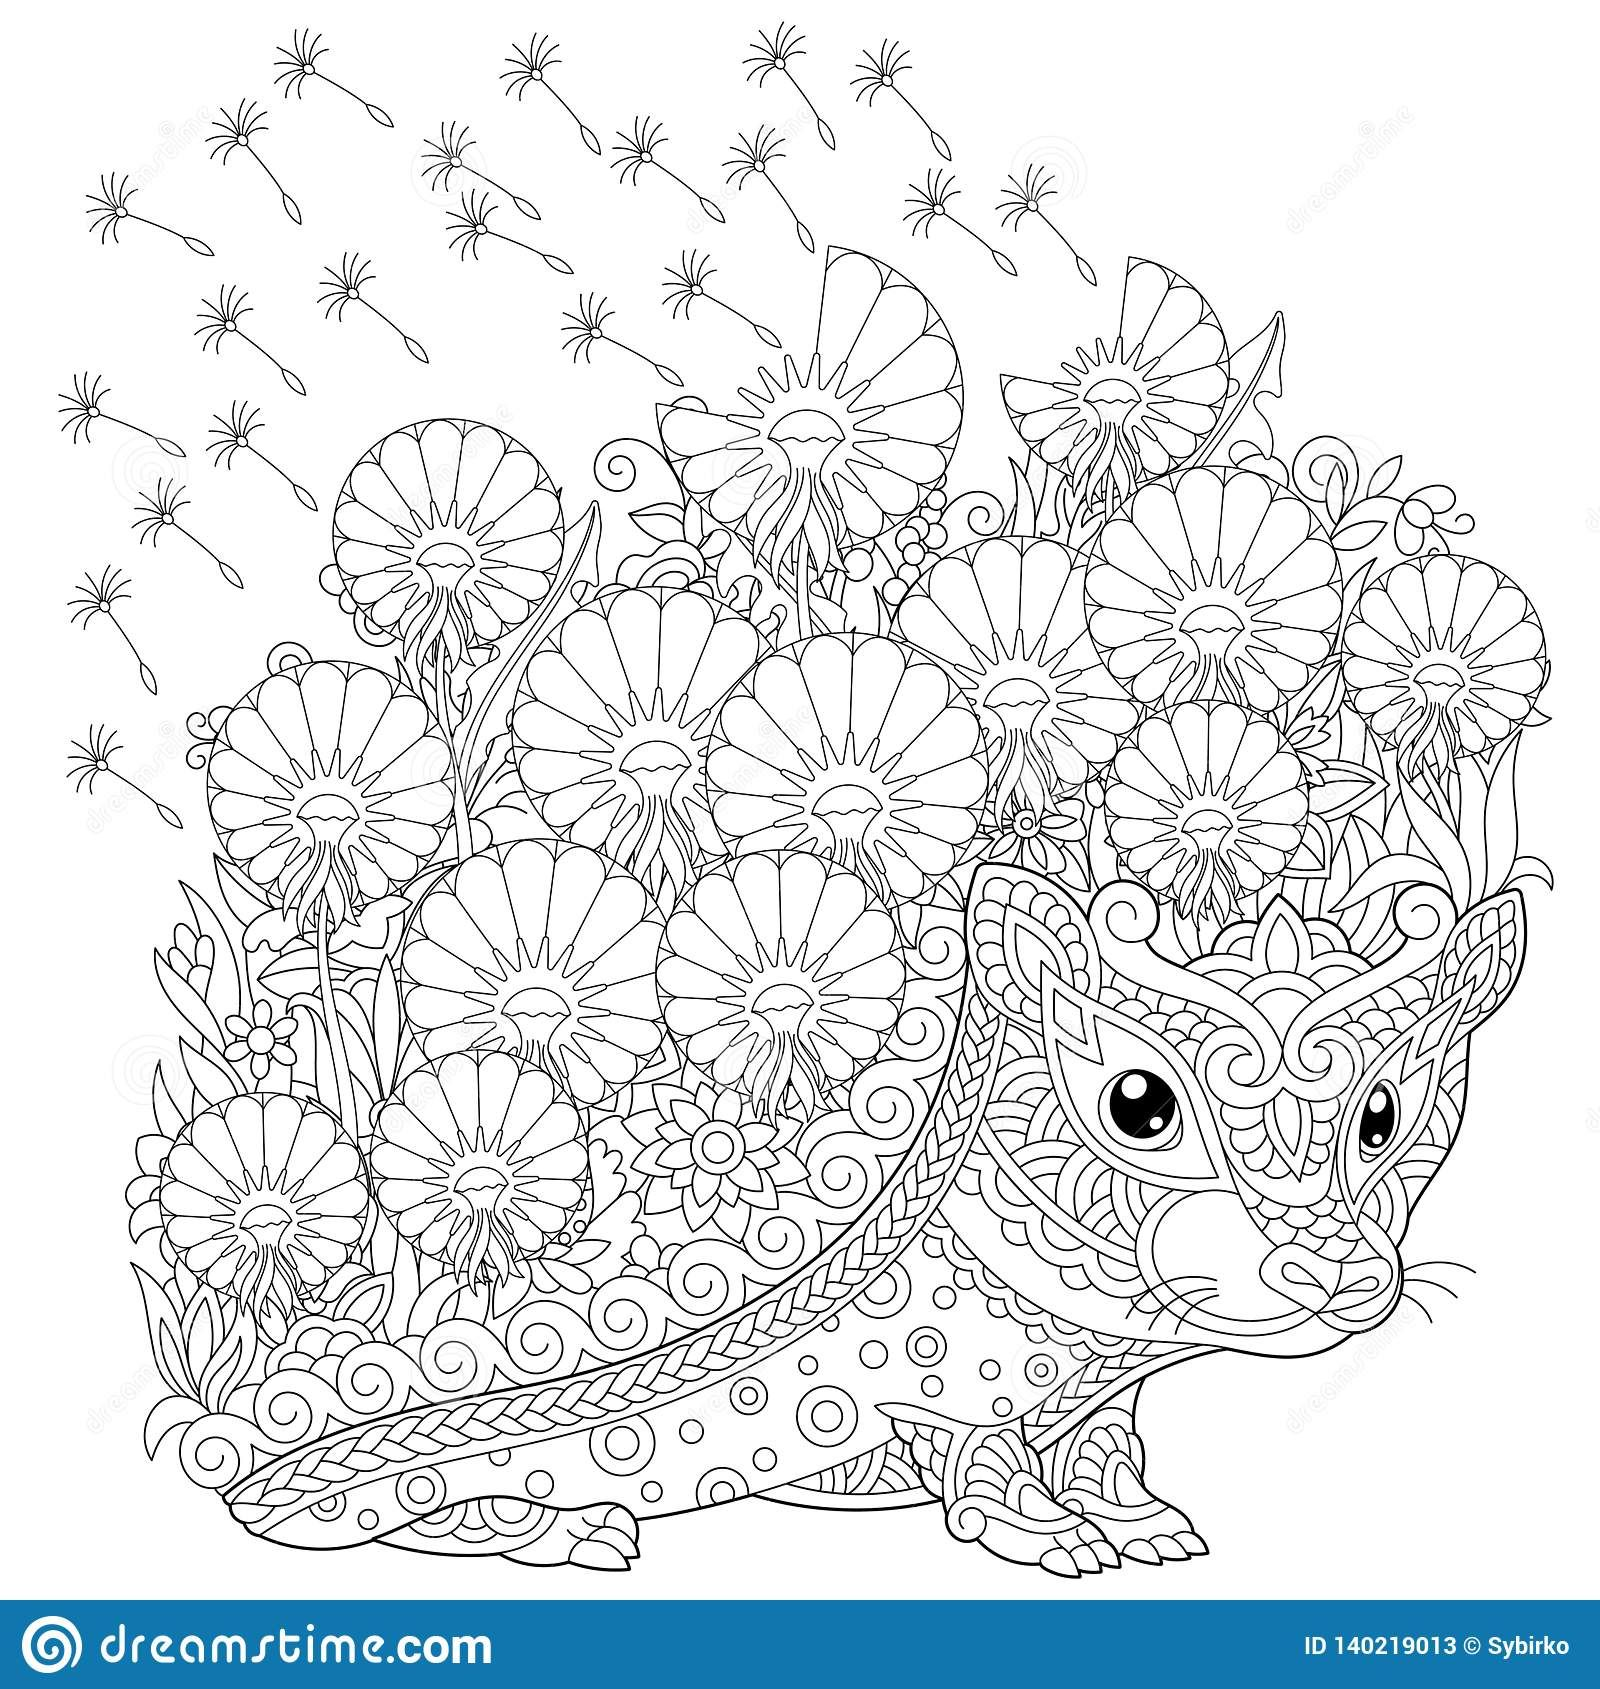 Pin By Mary Hollis Bacon On Coloring Animals Divers Hedgehog Colors Coloring Pages Flower Coloring Pages